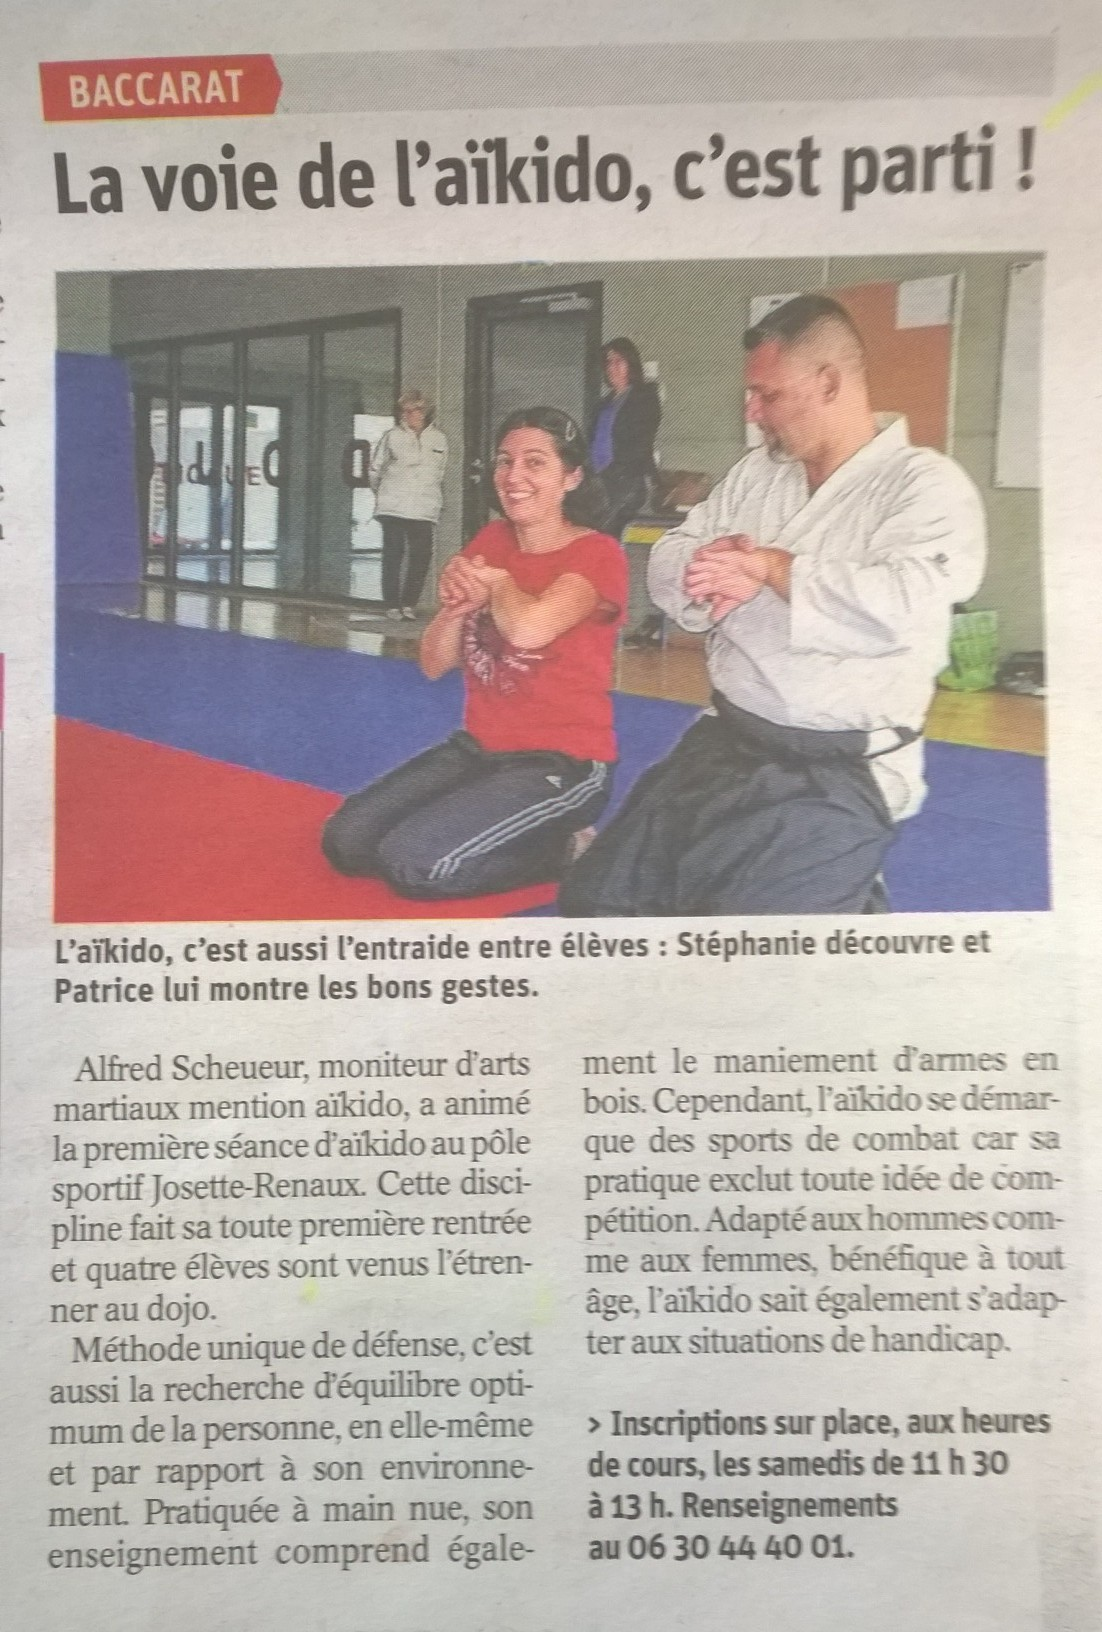 1er cours aikido baccarat 020917